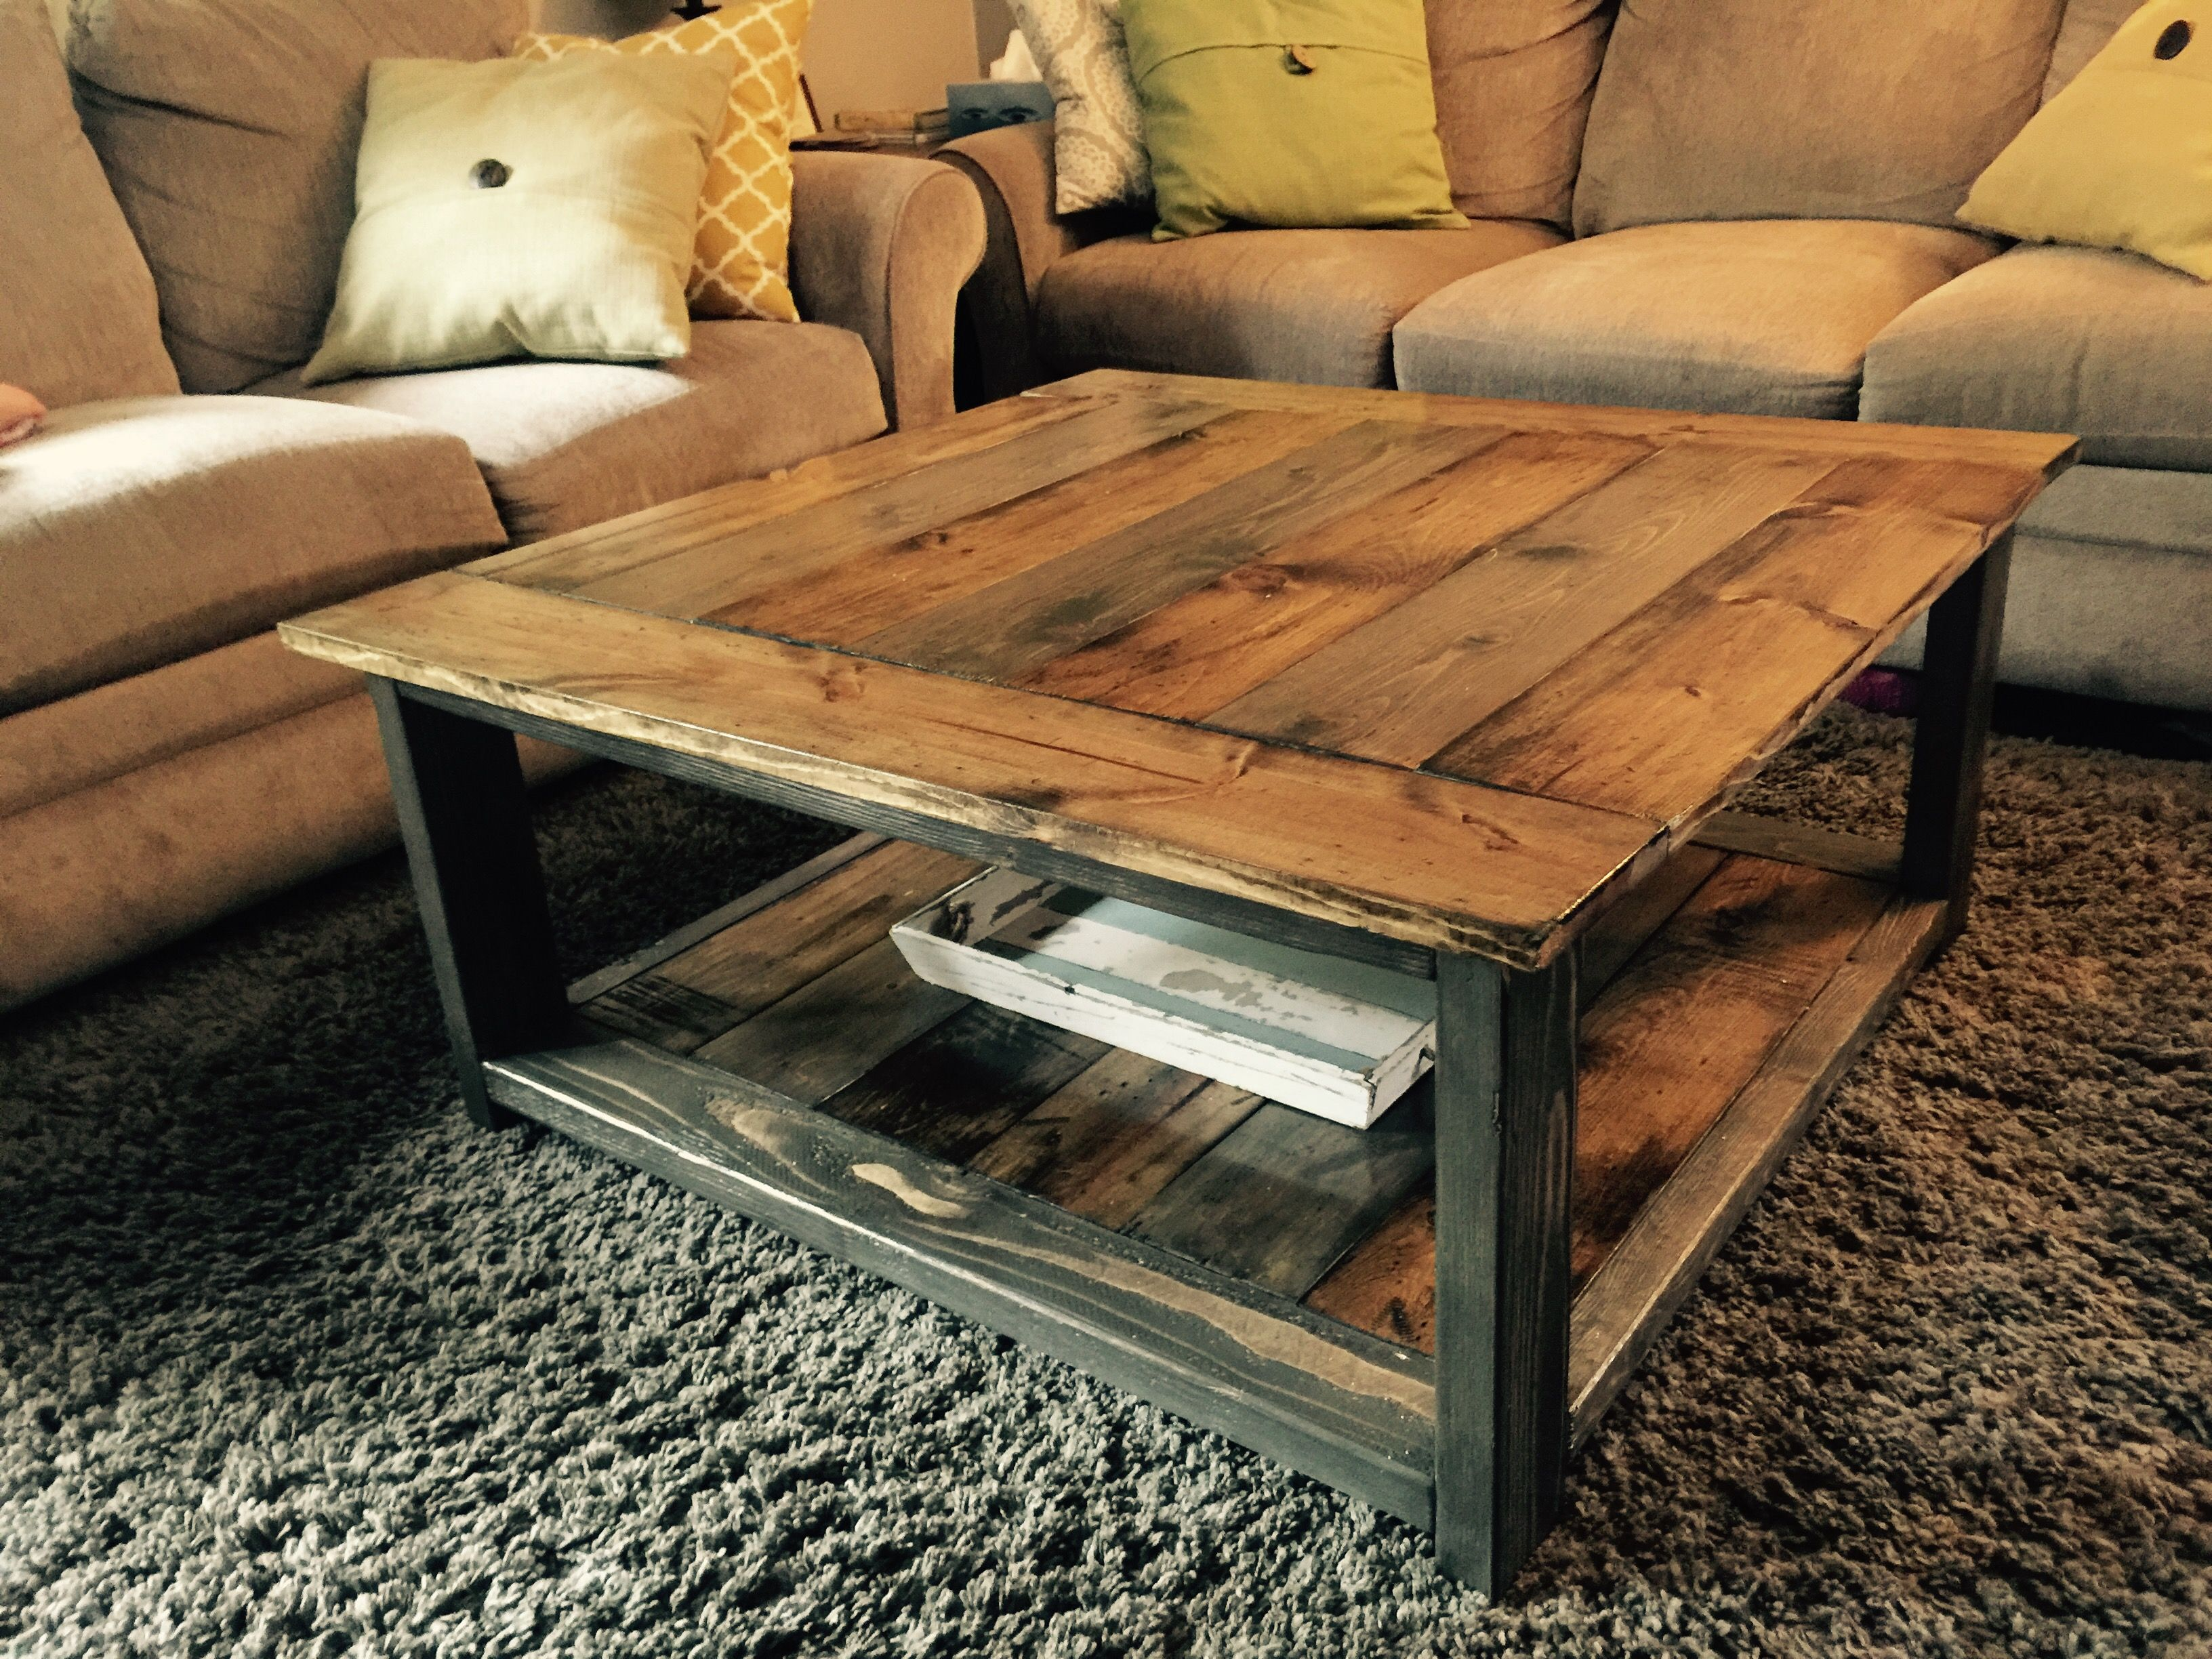 11 best images about Coffee table on Pinterest